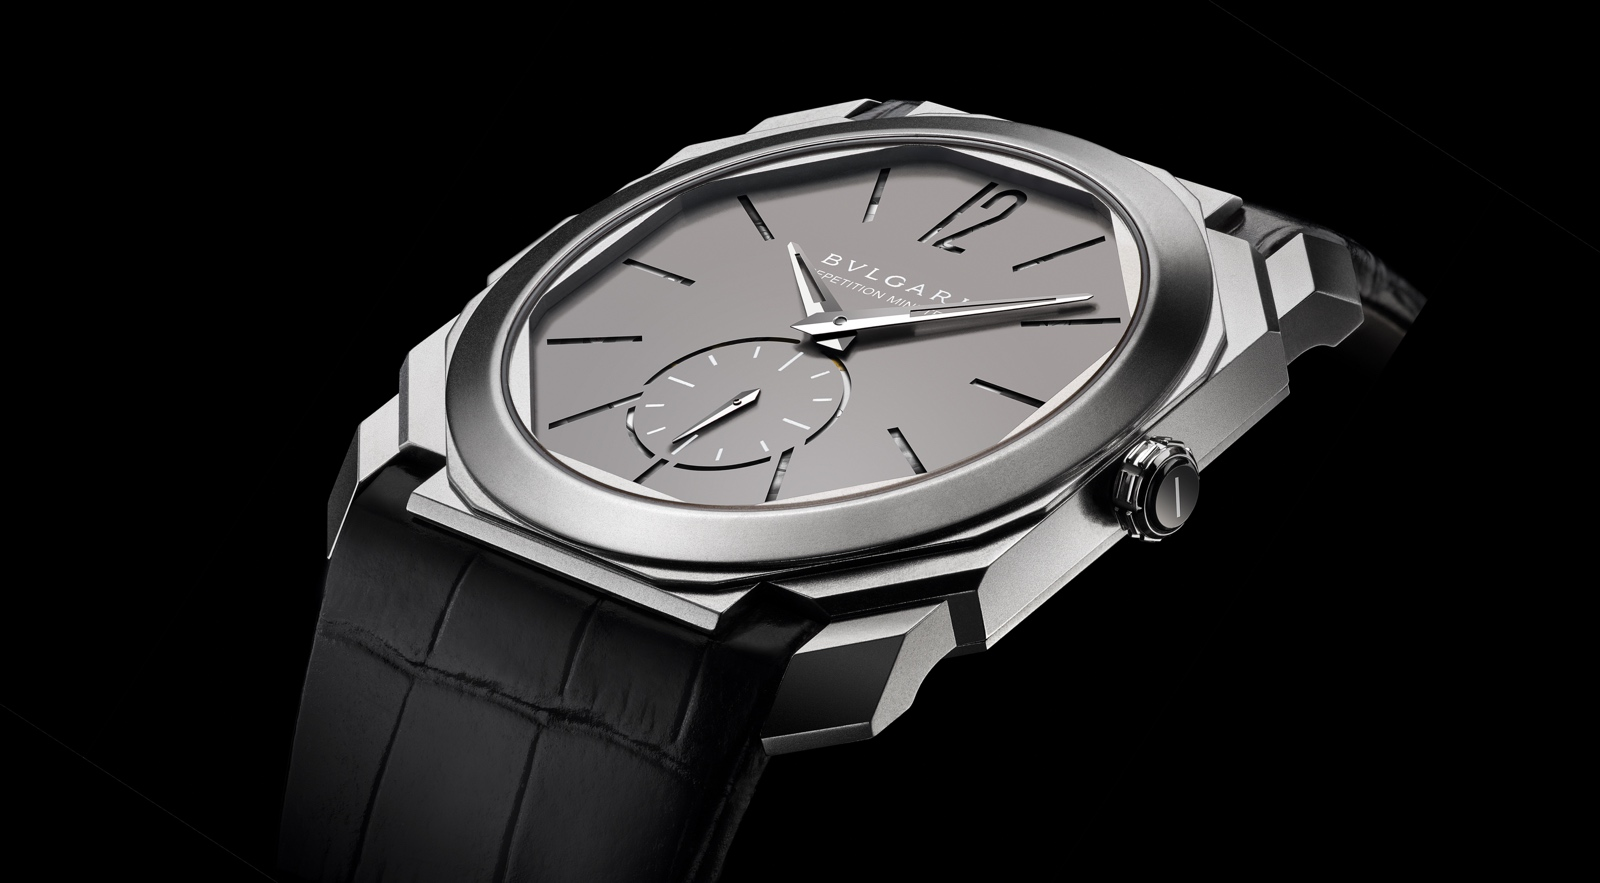 Bulgari en Baselworld 2016 - Octo Finissimo Répétition Minutes